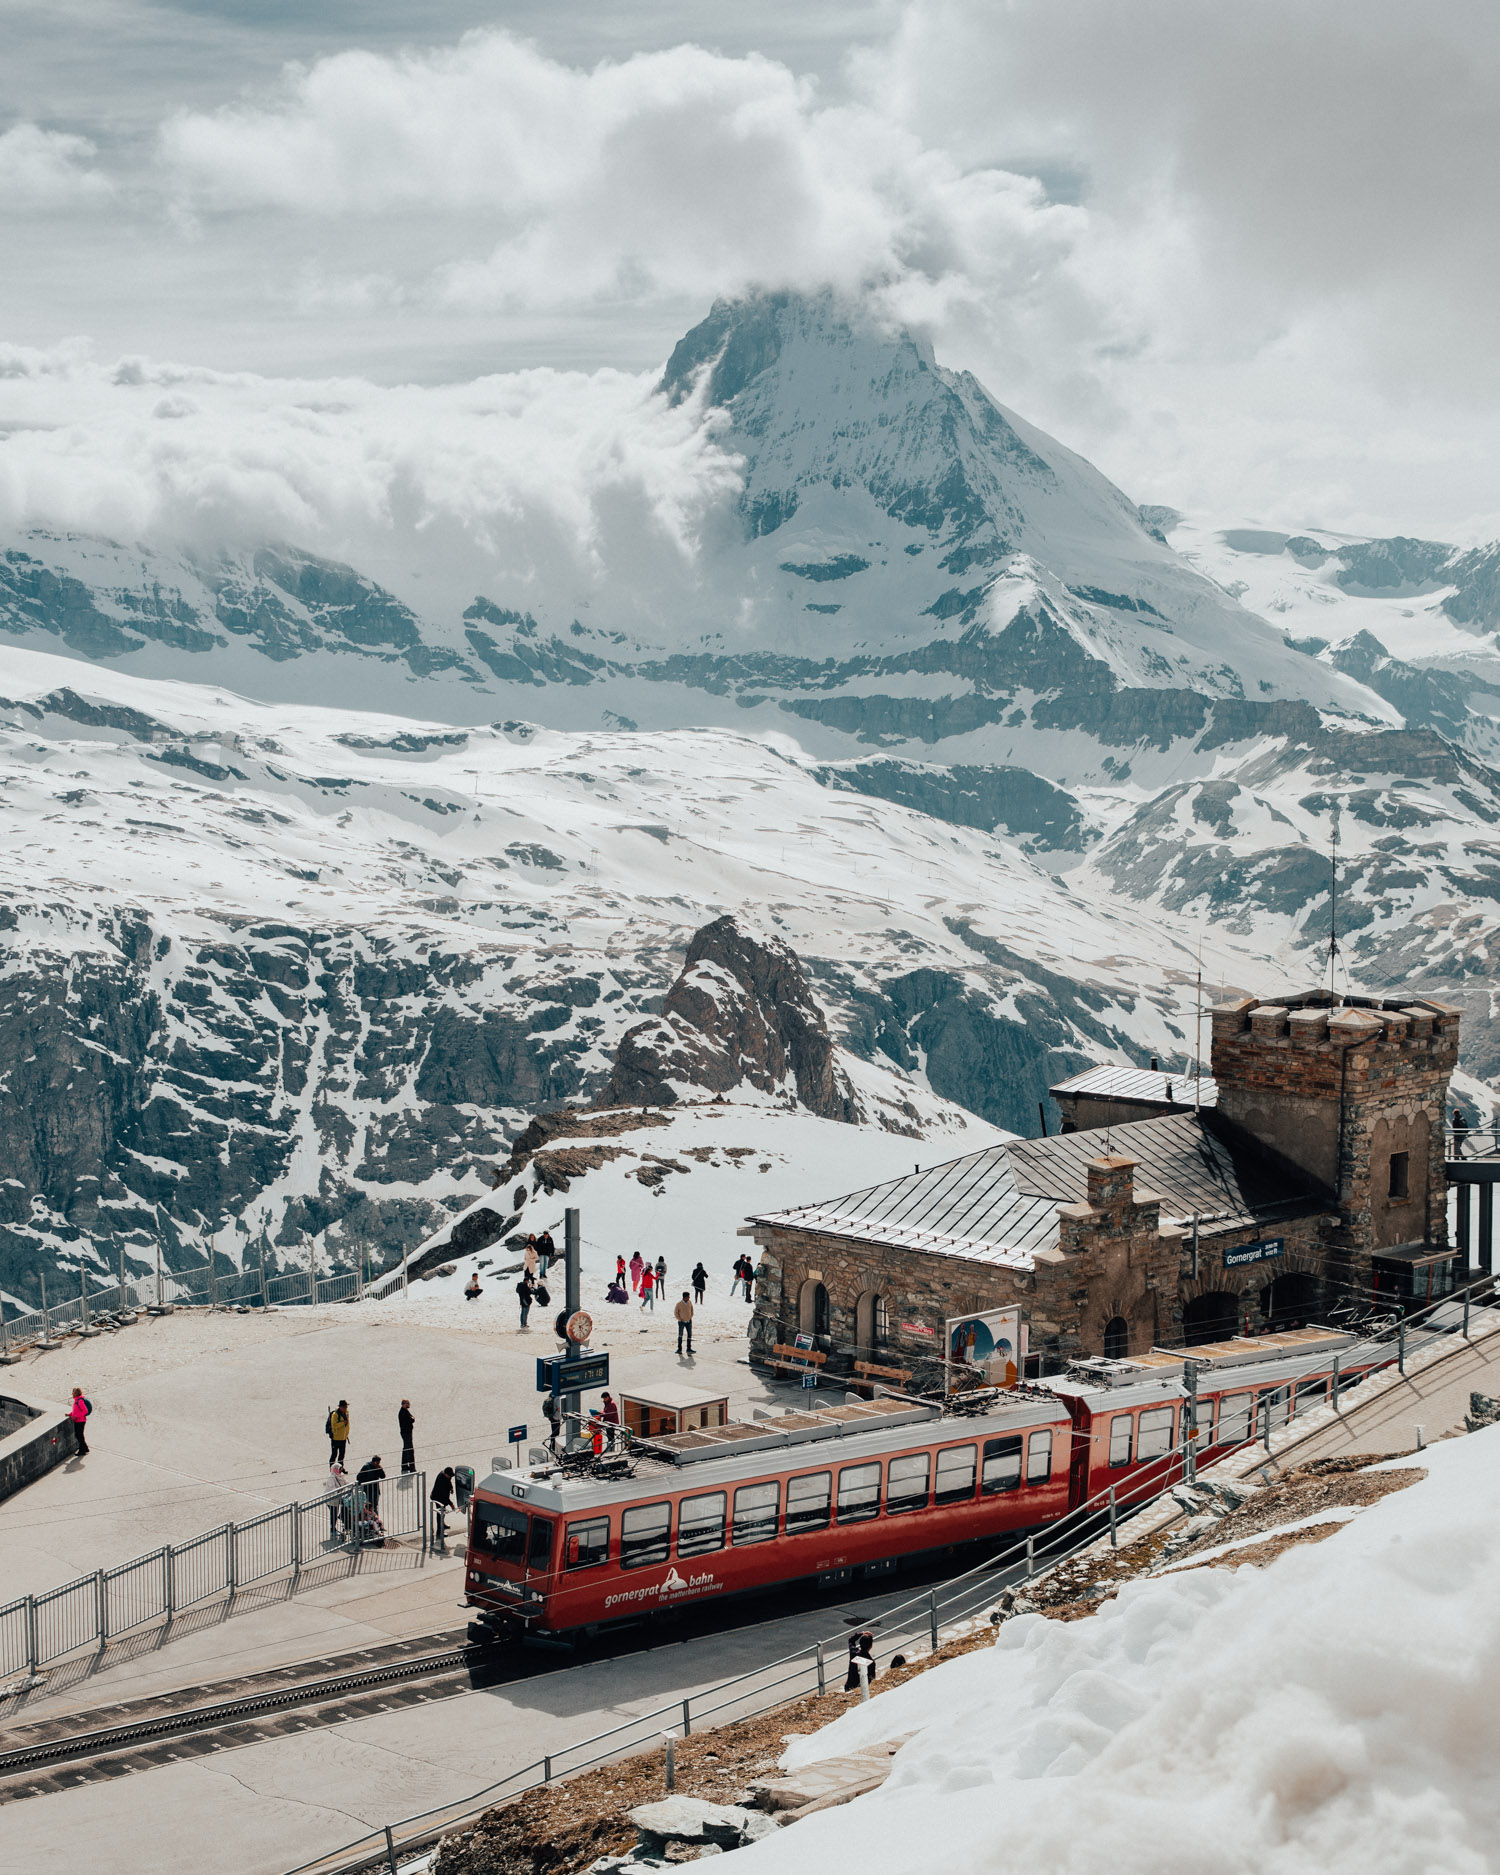 Gornergrat - Zermatt, Switzerland